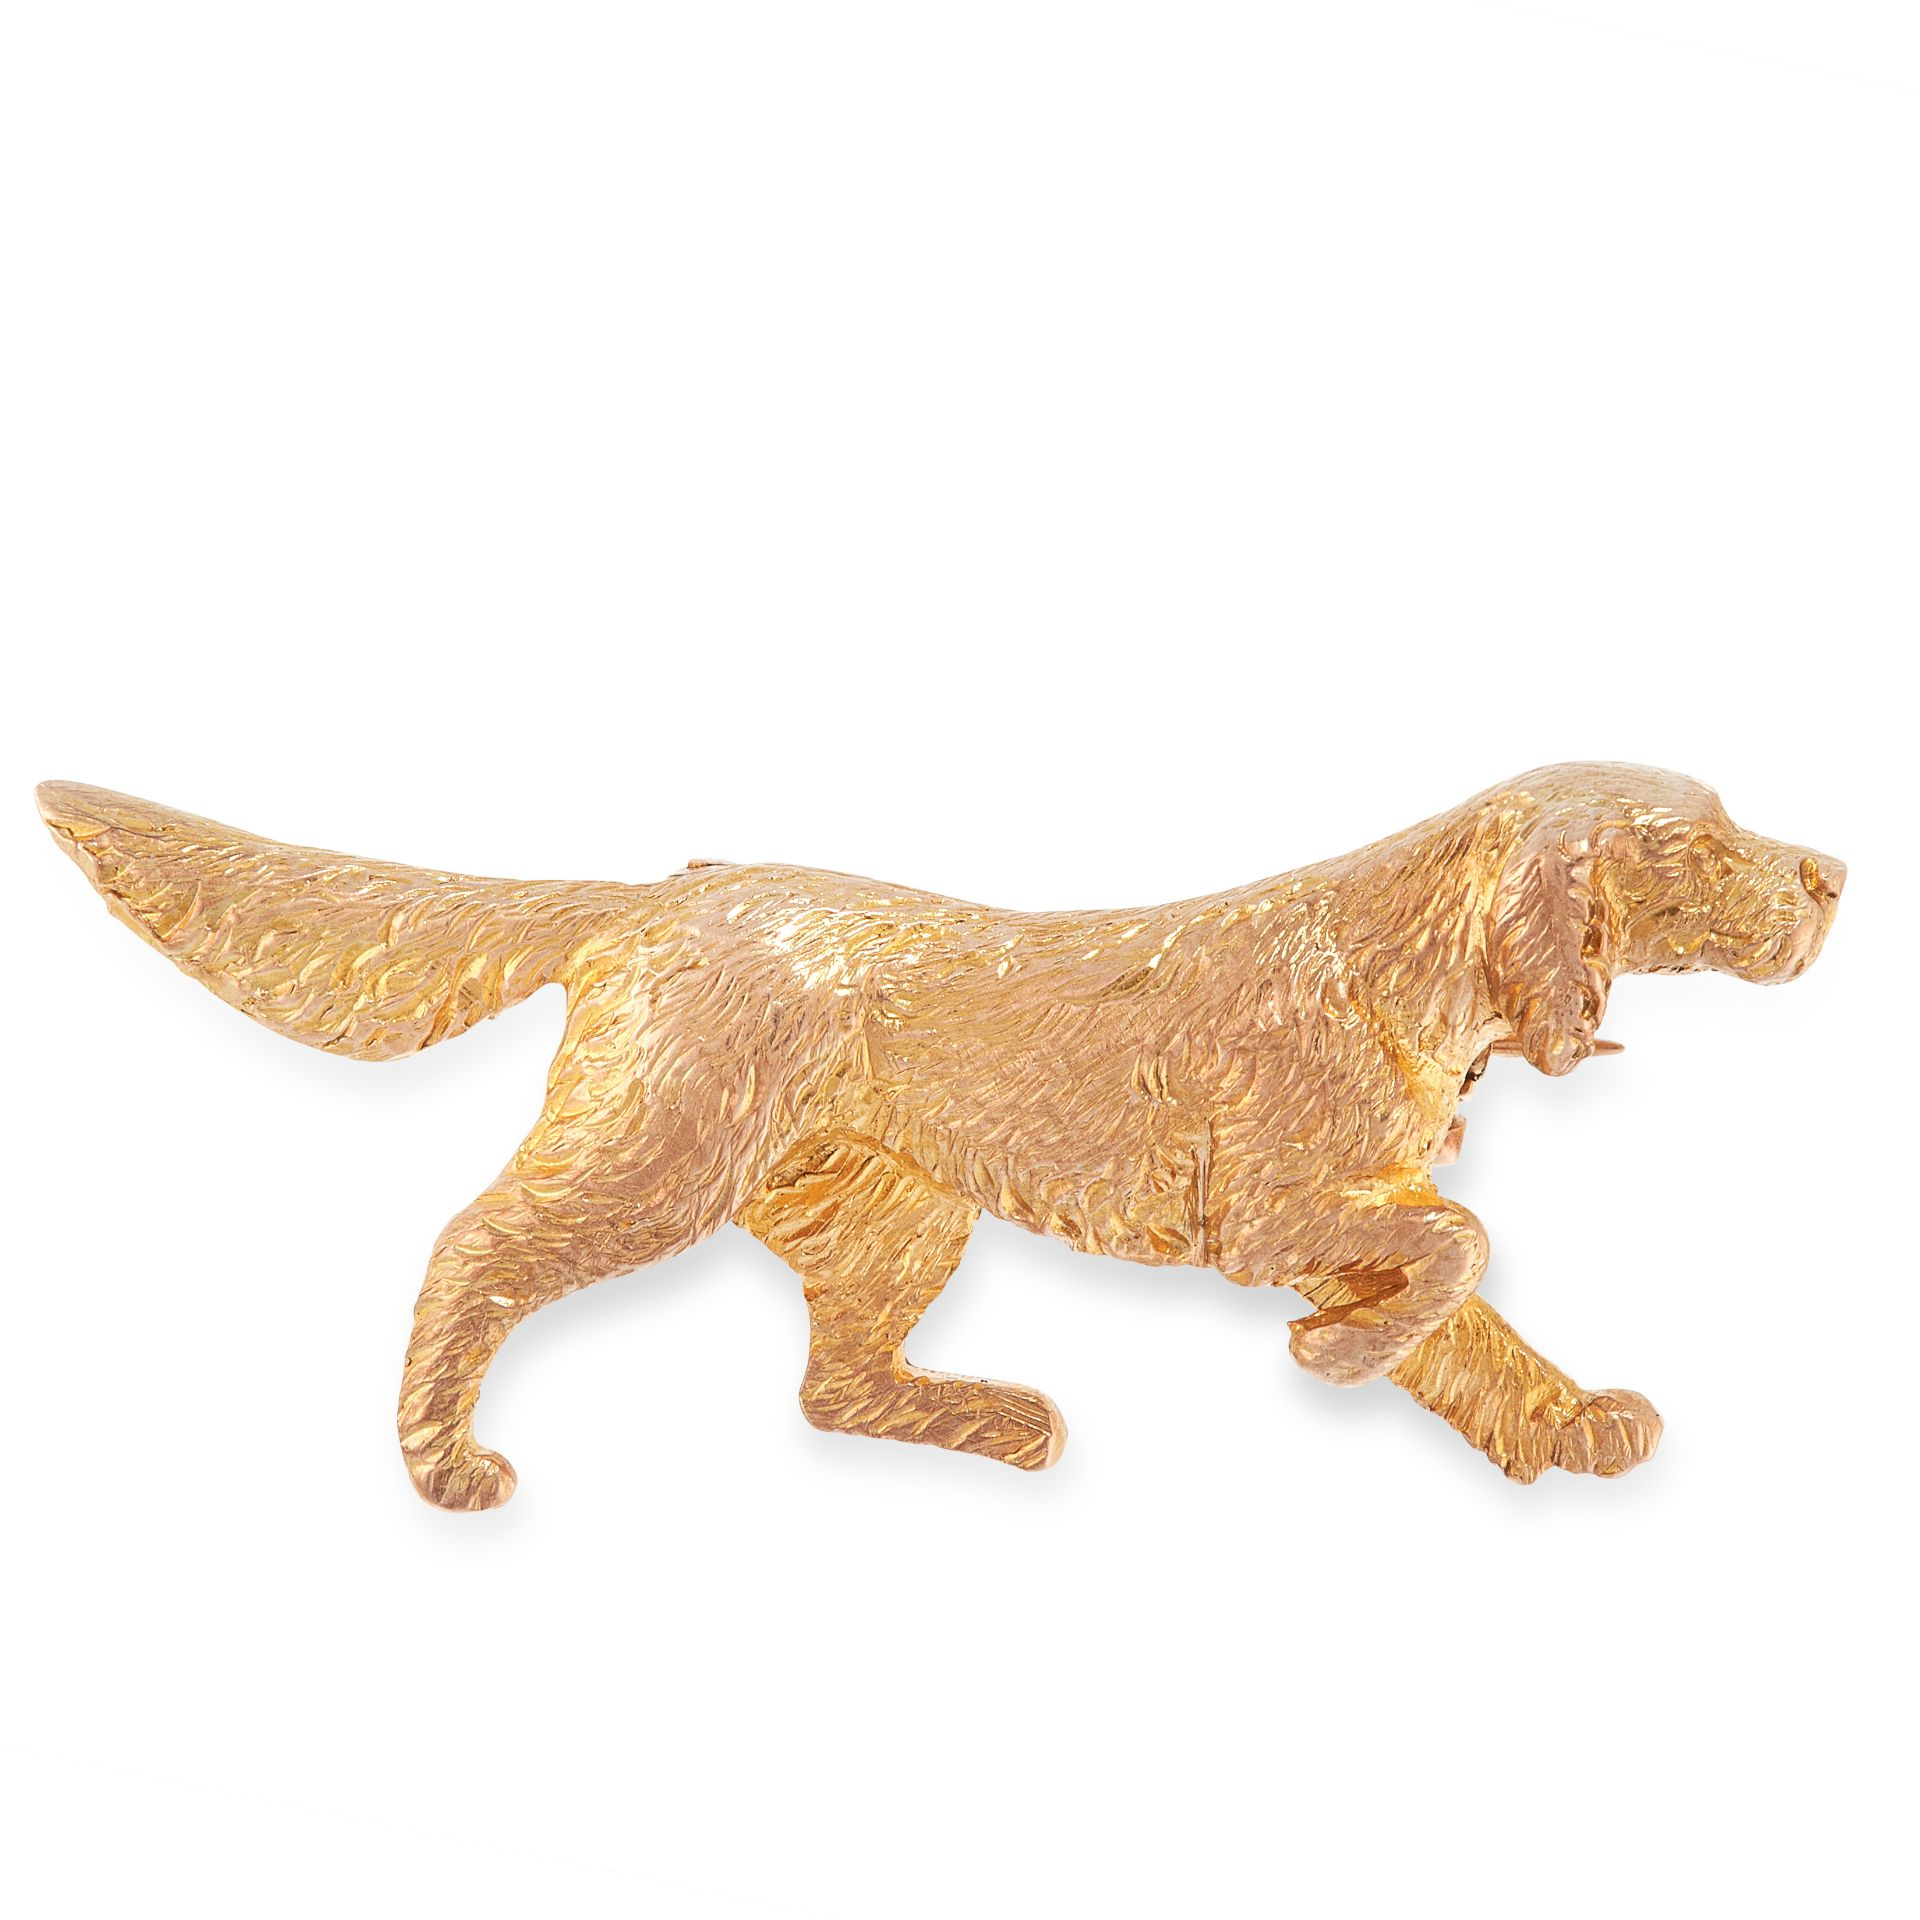 A VINTAGE DOG BROOCH in yellow gold, in the form of an English Setter or other hunting hound,